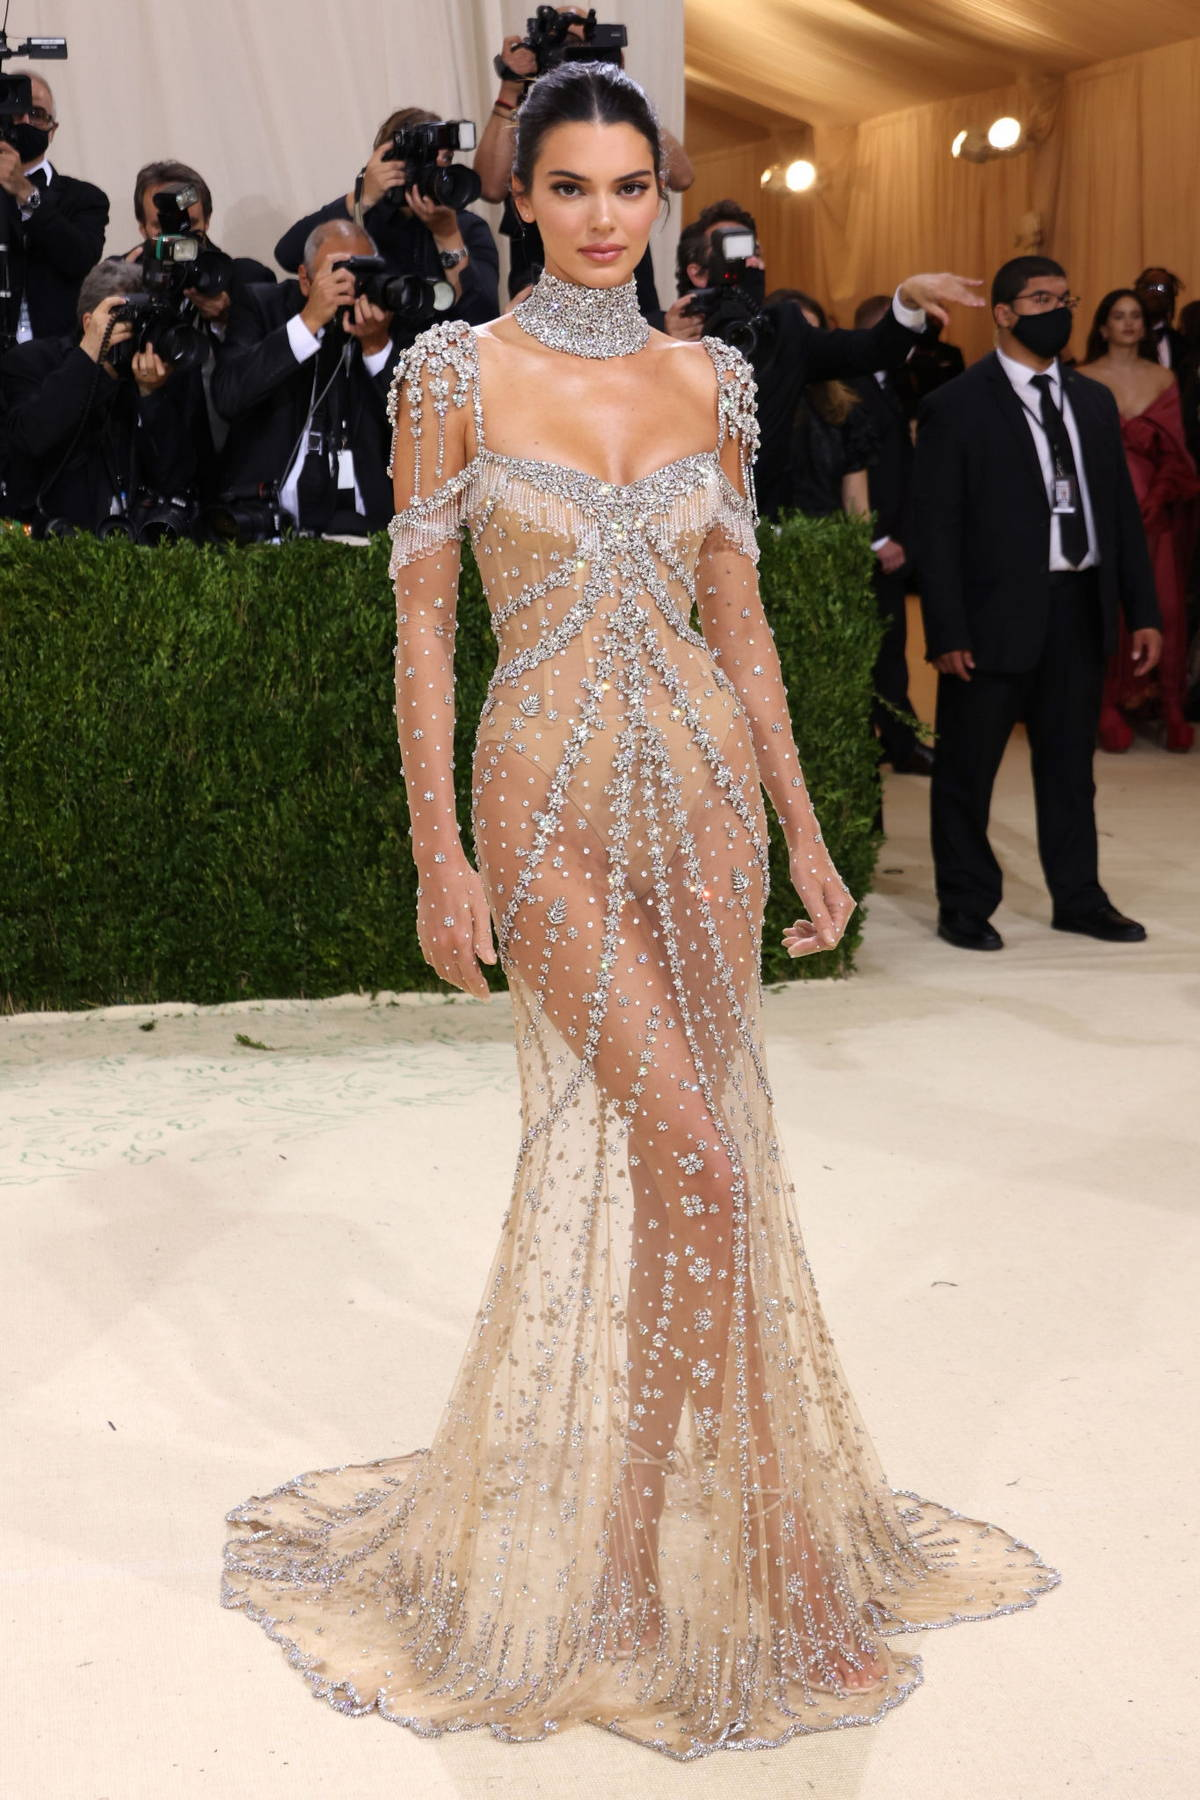 Kendall Jenner attends The Met Gala Celebrating In America: A Lexicon Of Fashion at Metropolitan Museum of Art in New York City